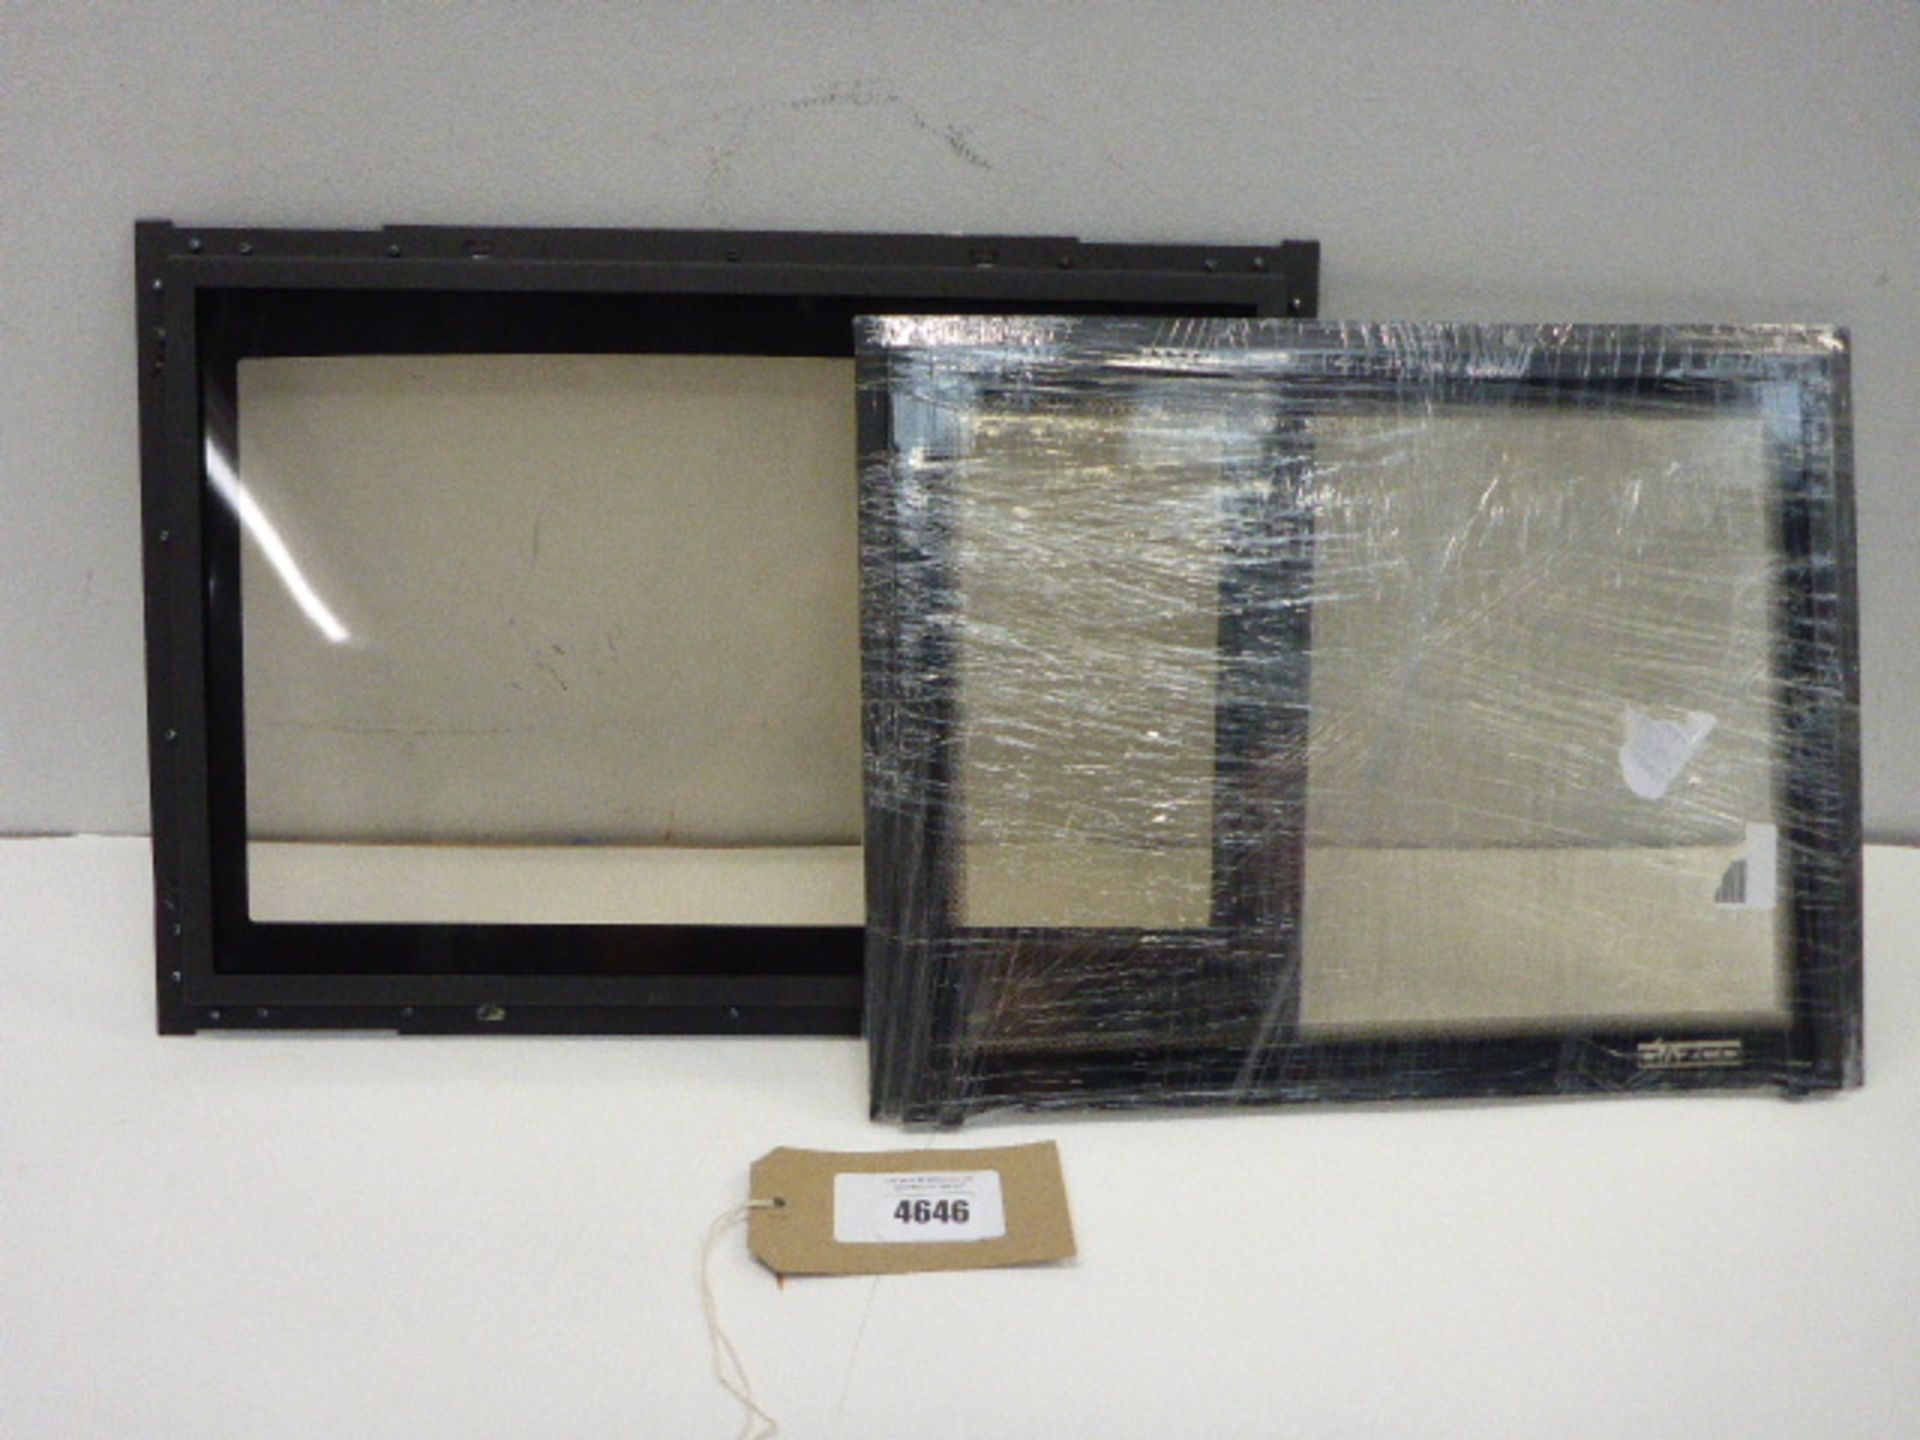 Lot 4646 - Yeoman gas stove replacement glass door front and Gazco replacement door front